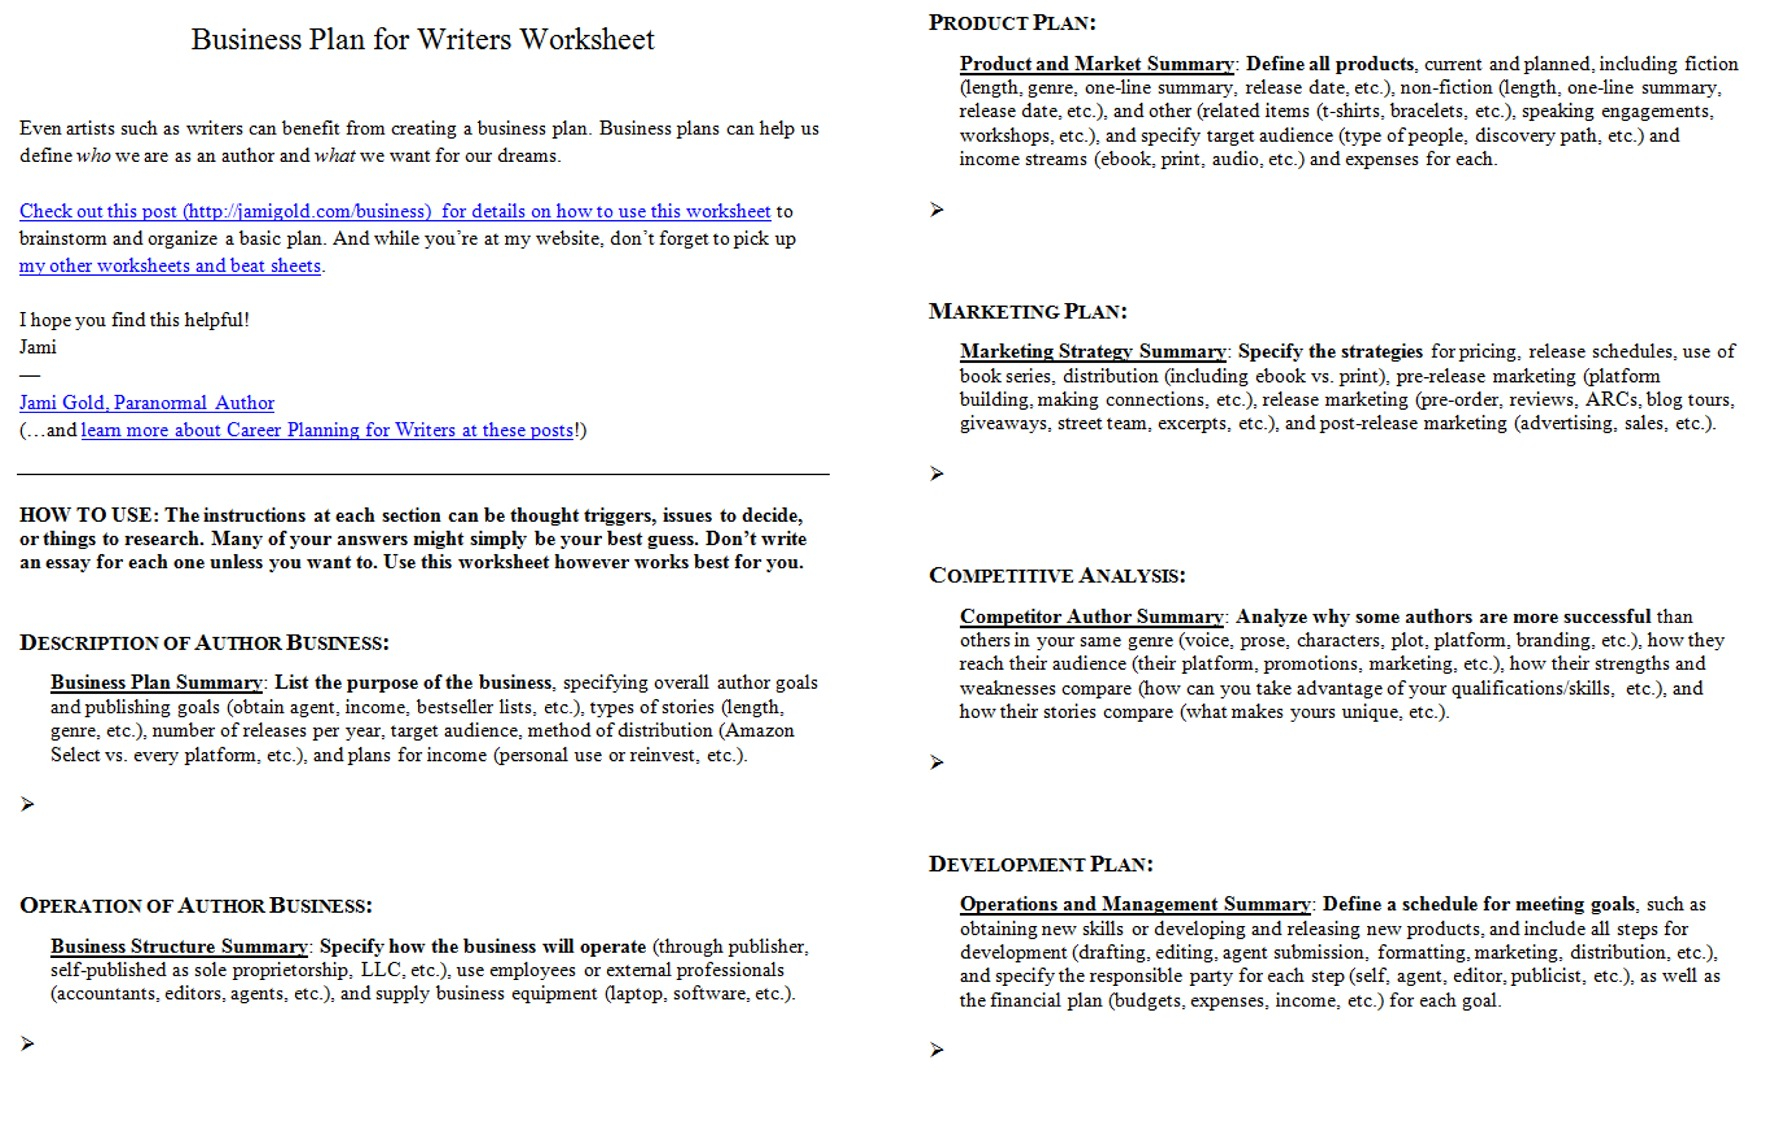 Uncategorized Career Planning Worksheet introducing the business plan for writers worksheet jami gold screen shot of both pages worksheet